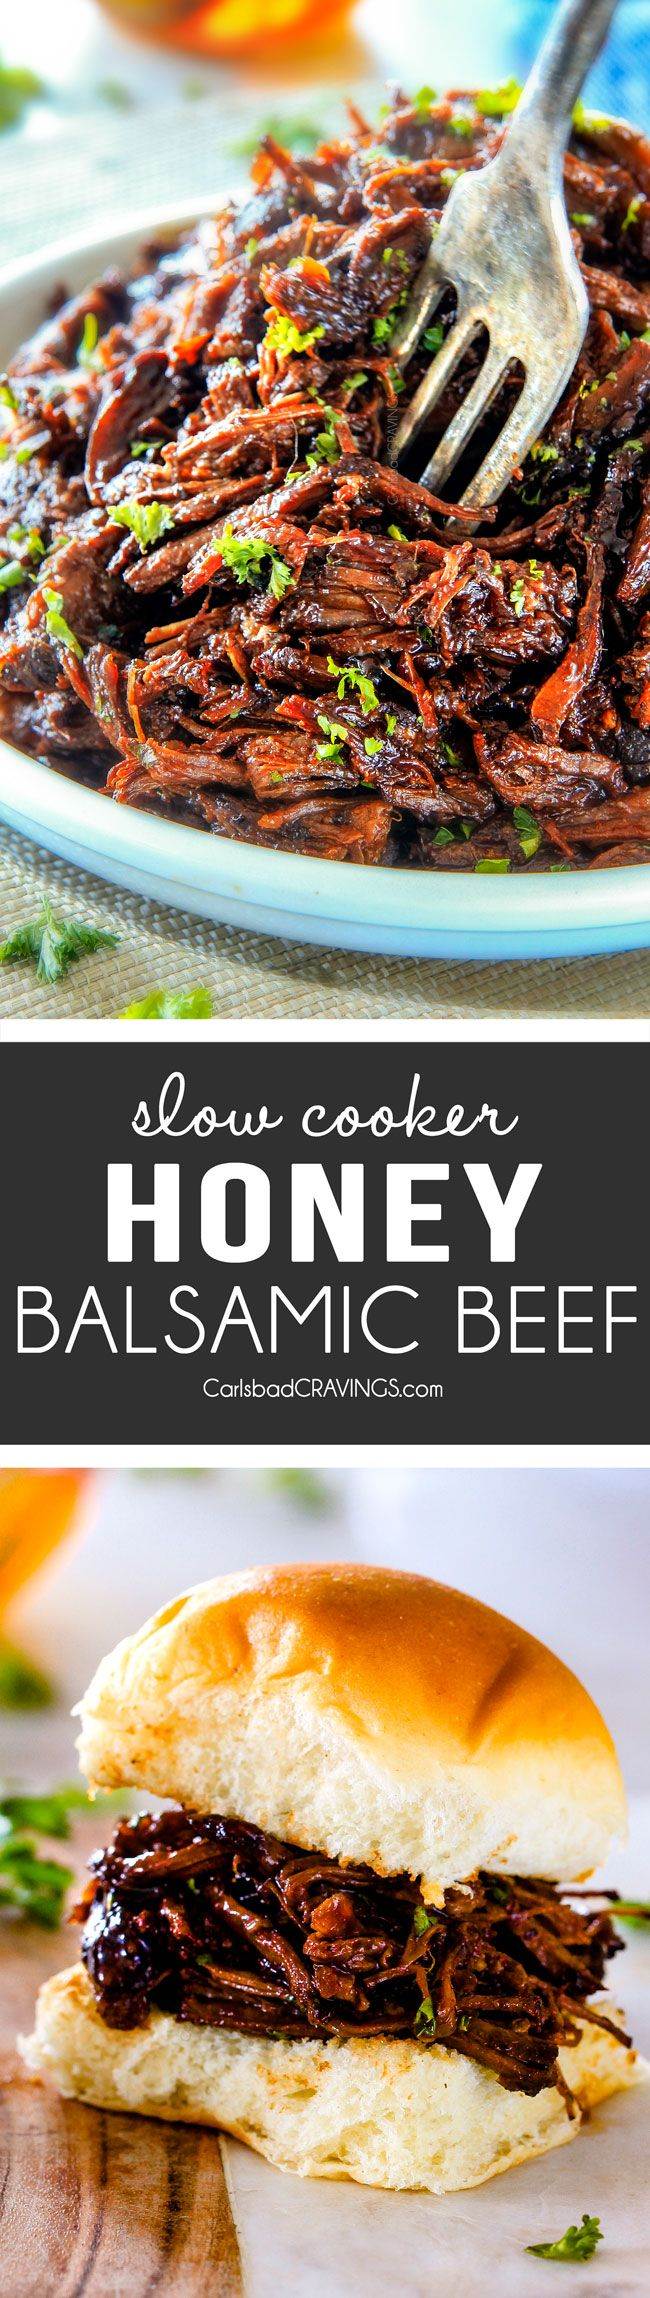 Sweet and tangy, savory Slow Cooker Honey Balsamic Beef is fall apart tender, crazy juicy, packed with flavor and smothered in AMAZING honey balsamic sauce!